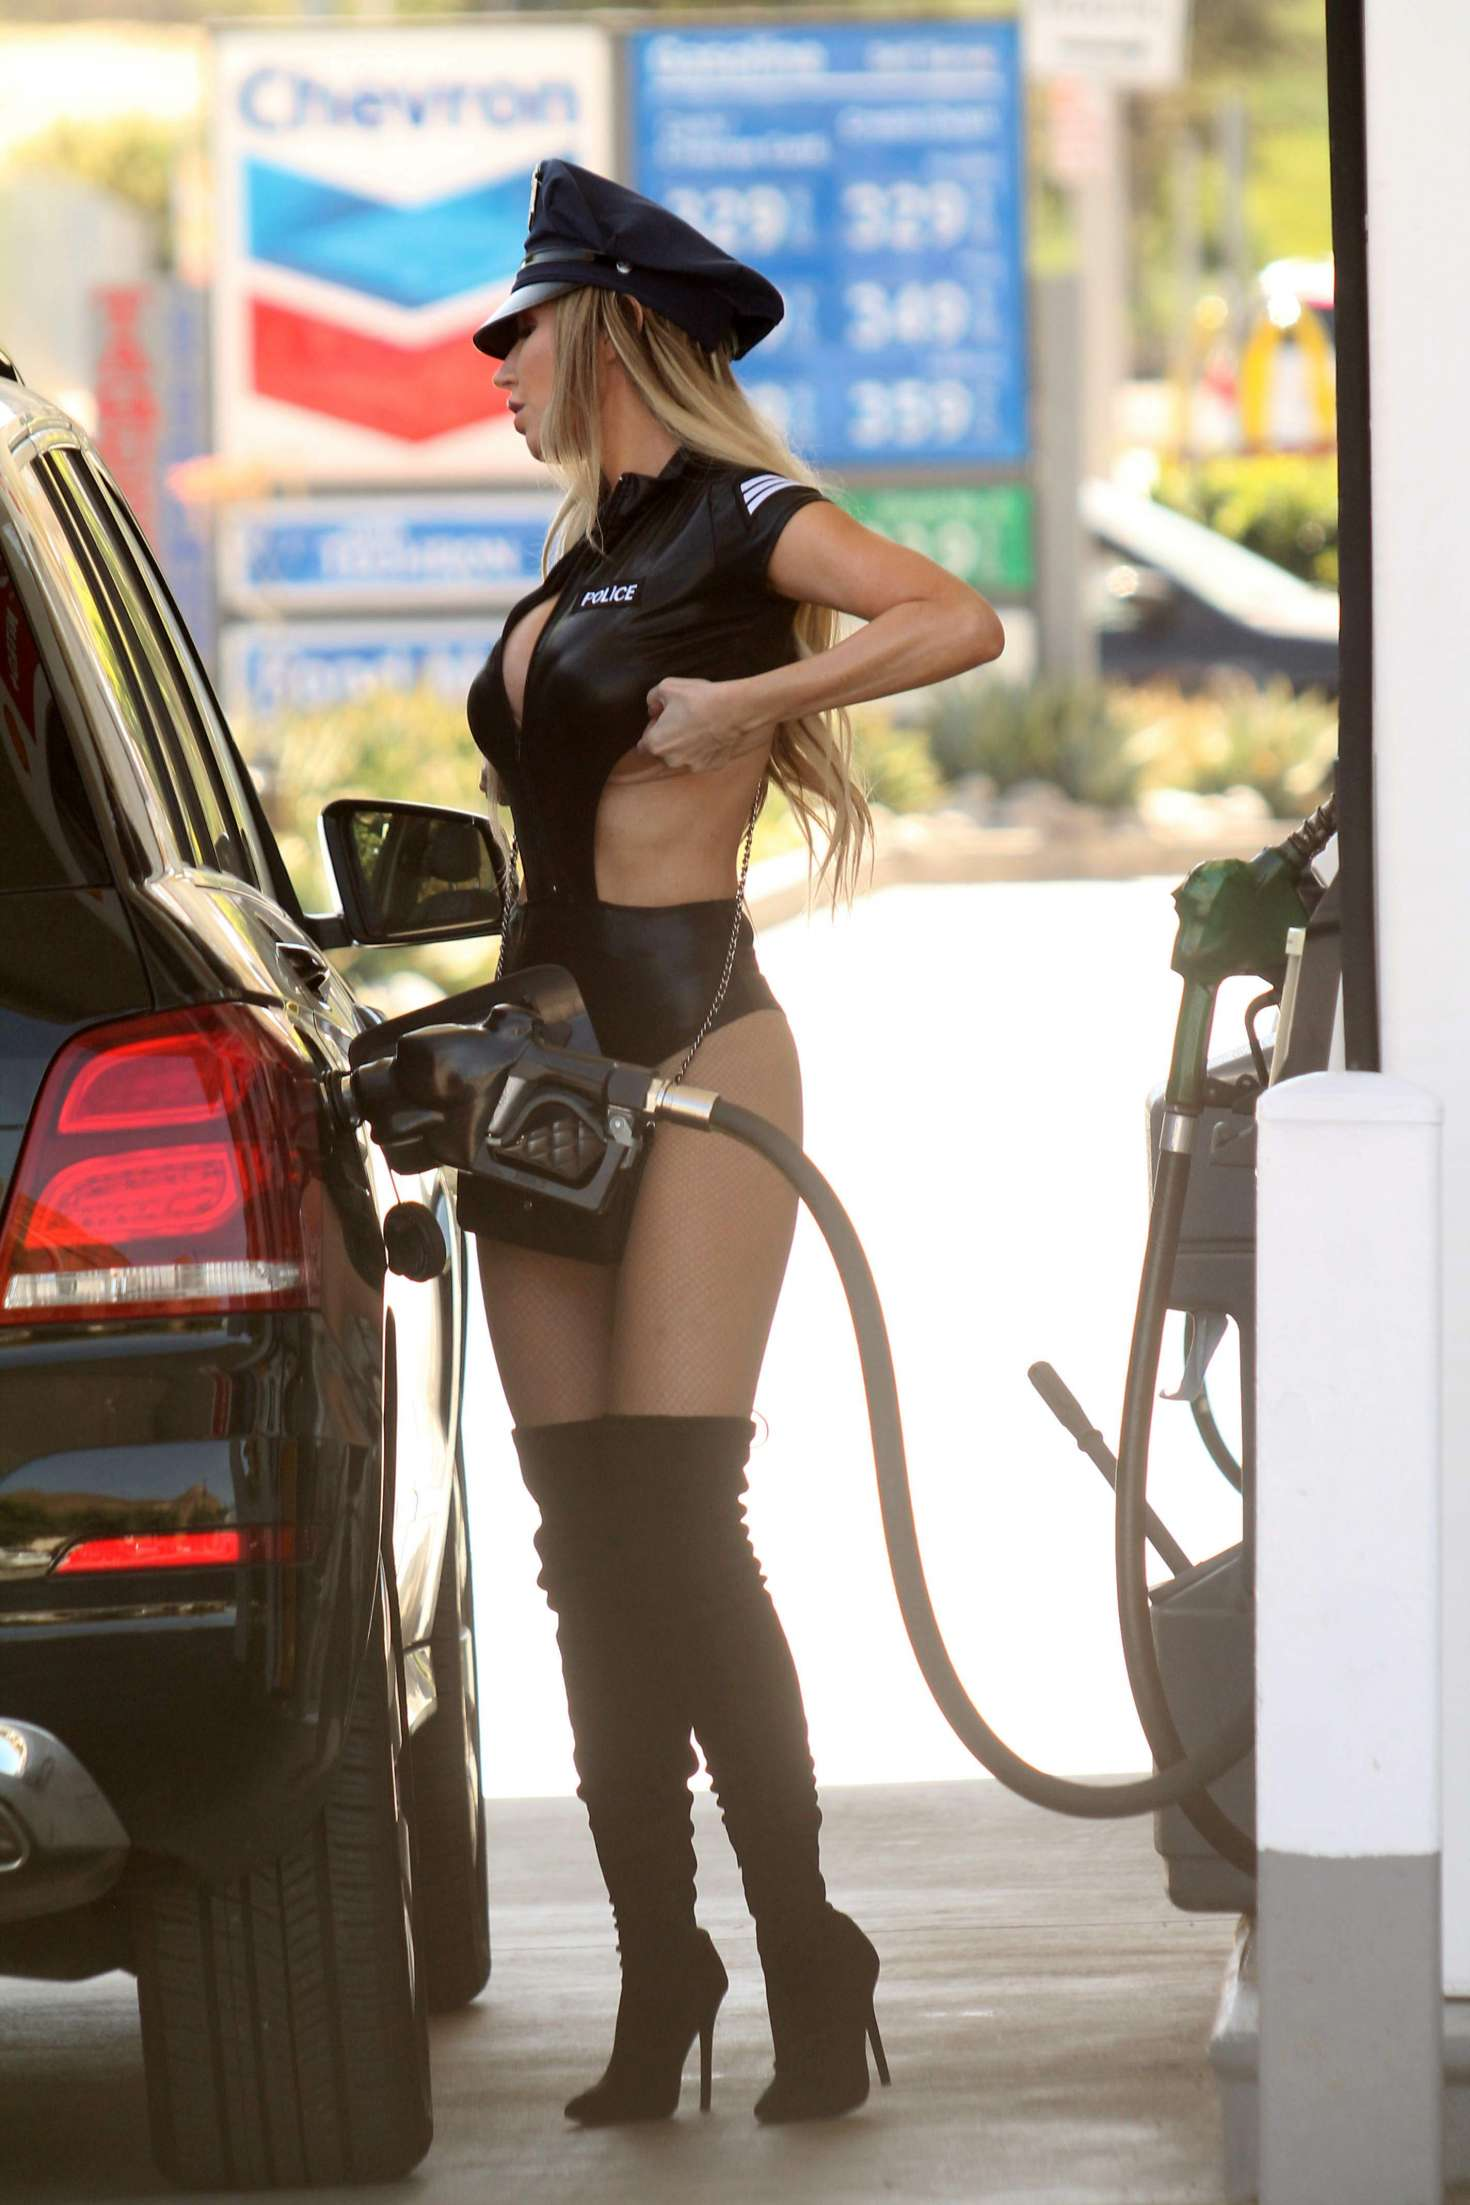 Gas Pump Girls Nude horny girls pumping your gas naked - ristorantealfieri